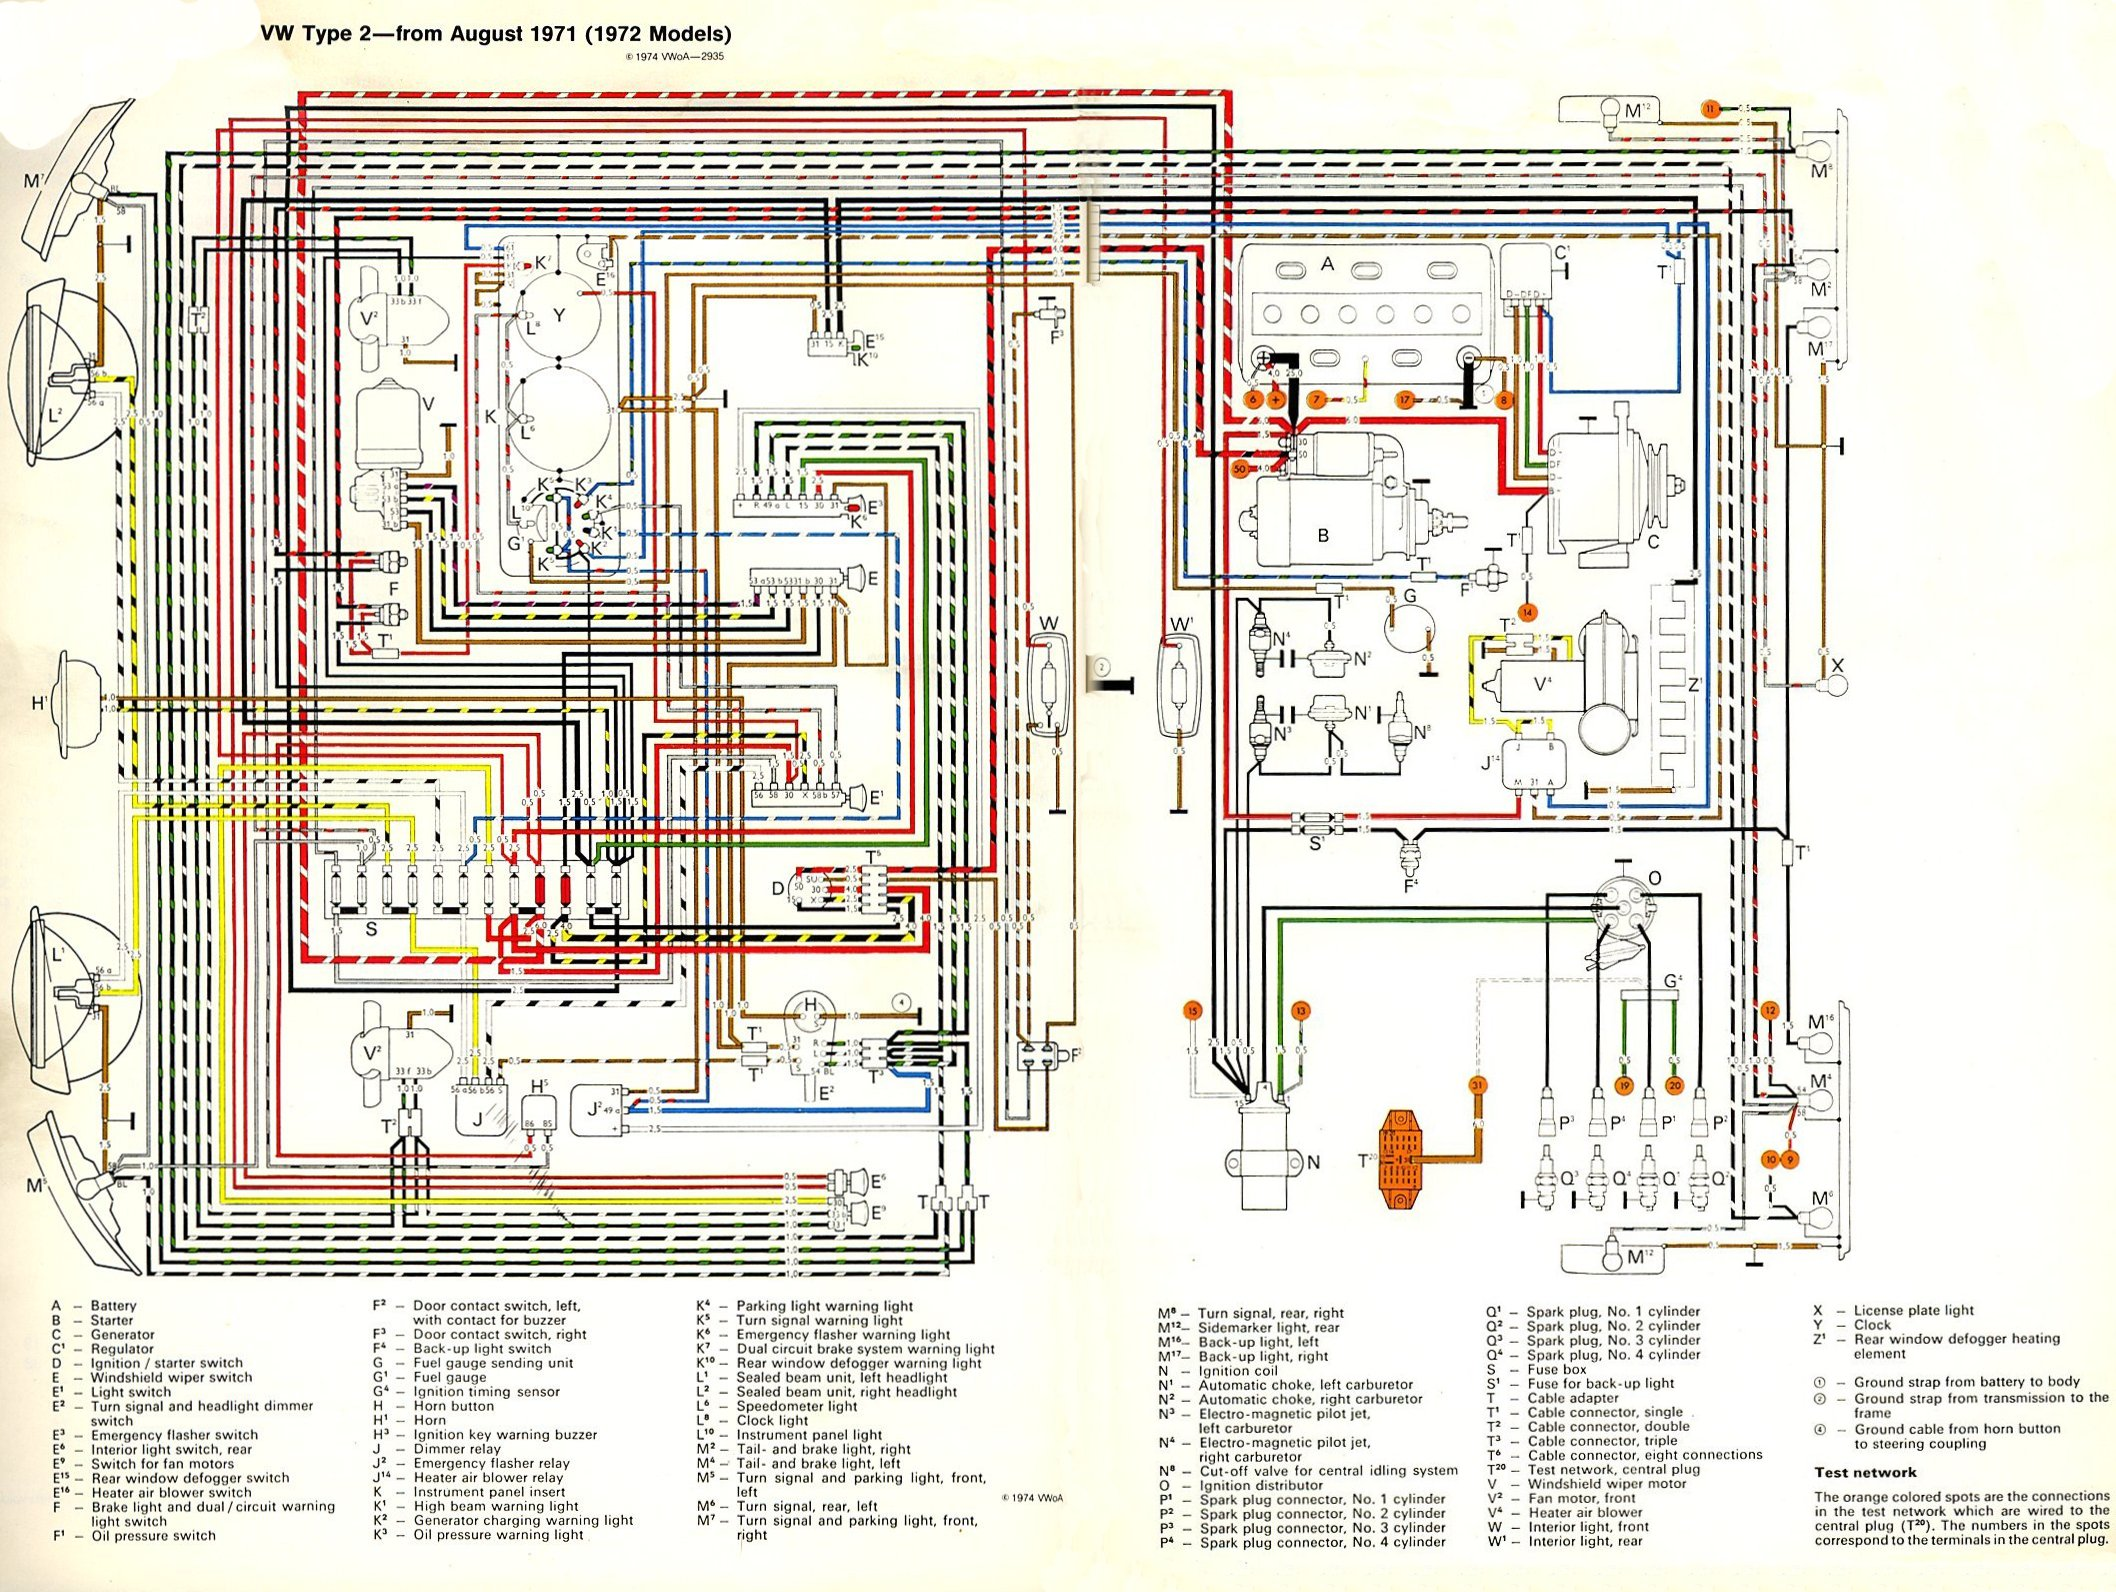 bus_1972_wiring 1977 porsche 911 wiring diagram wiring diagram simonand 1978 vw bus fuse box diagram at metegol.co